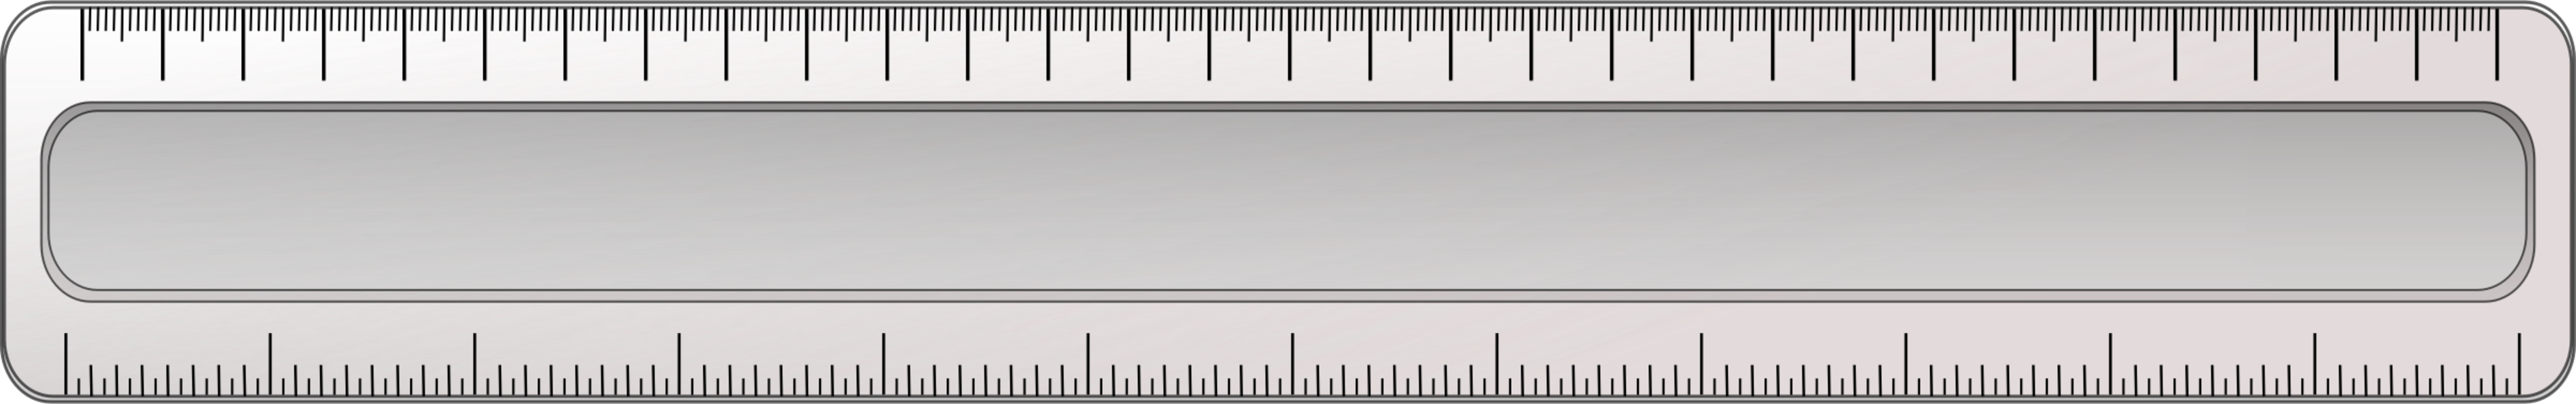 Ruler clipart silhouette. Drawing description stationery free